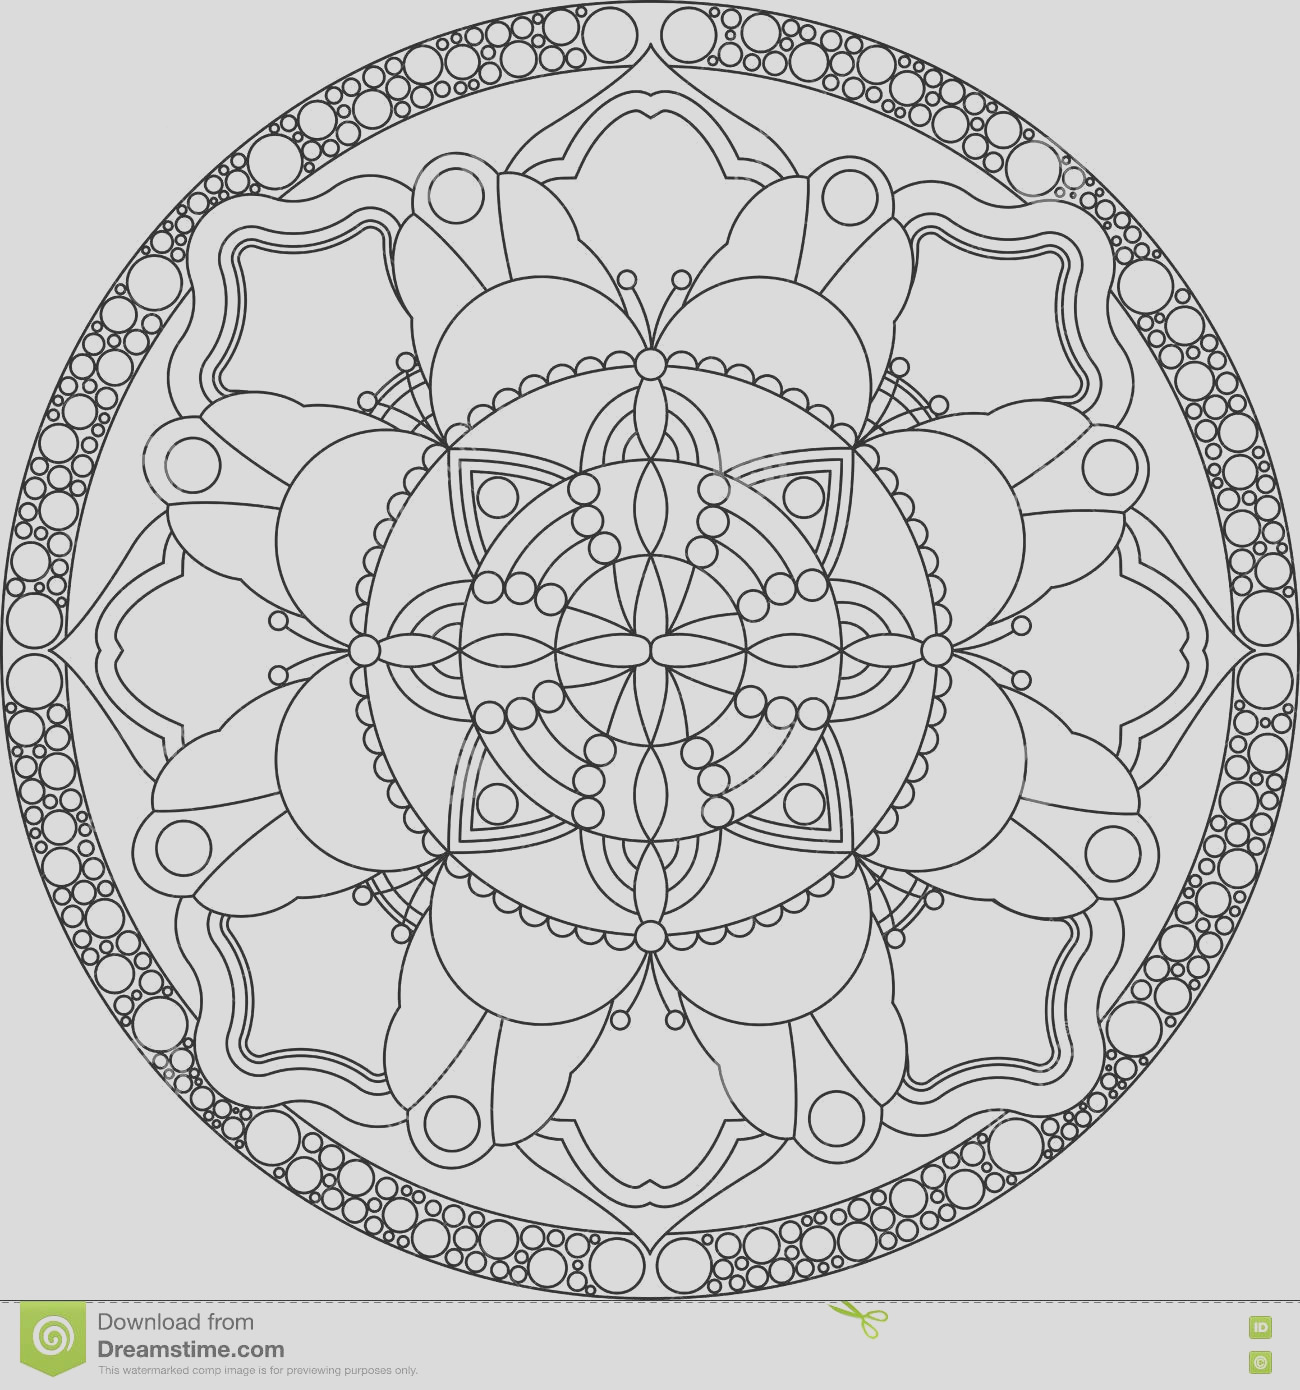 stock illustration zentangle adult coloring page mandala book pages adults rest relaxing meditation illustration image